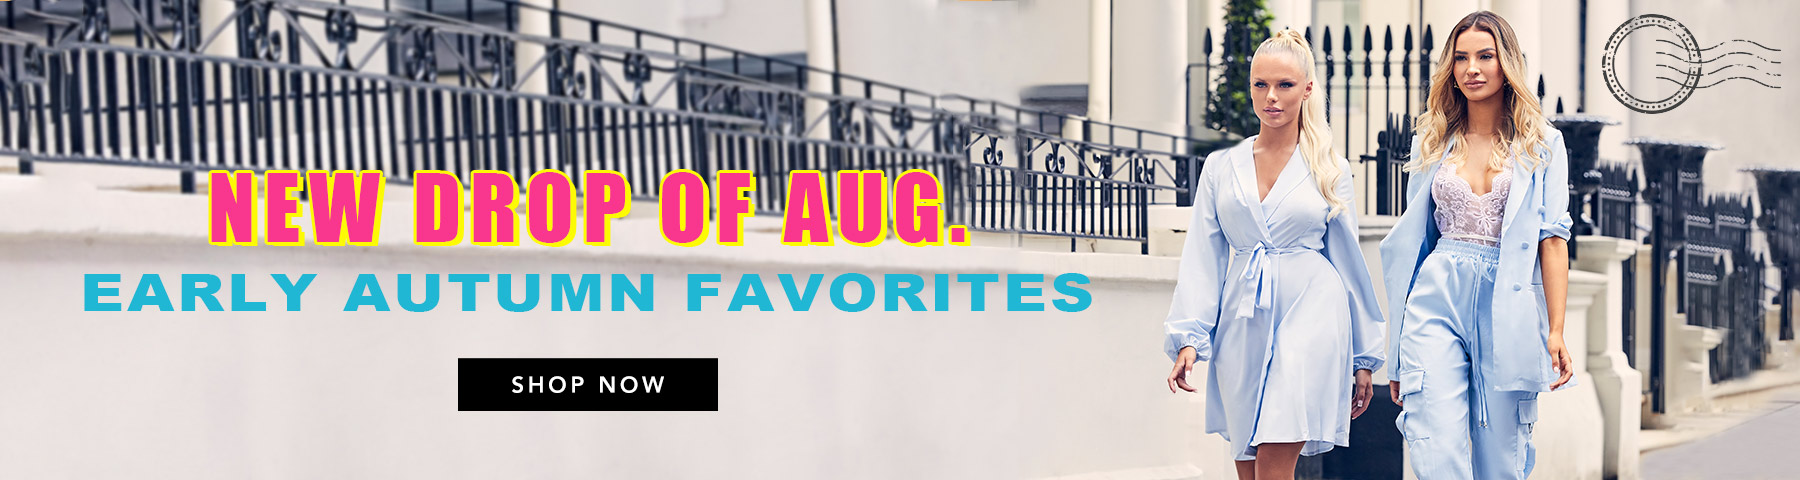 Early Autumn Favorites